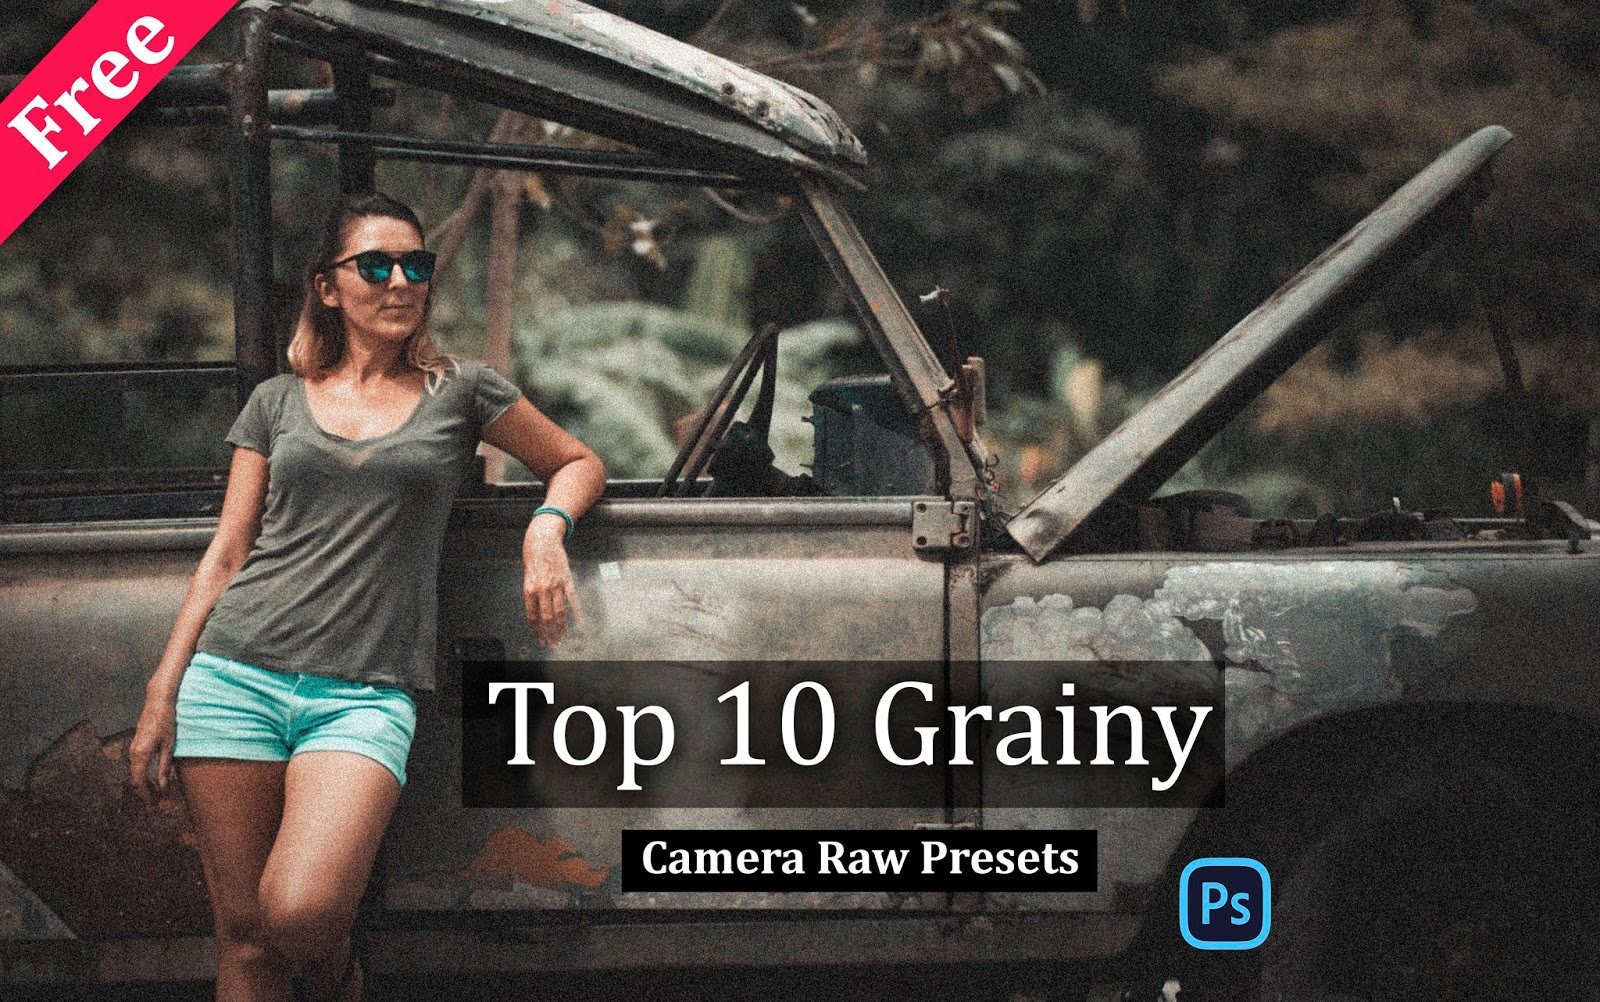 Download Top 10 Grainy Camera Raw Presets for Free | How to Make Grainy Look to Photos in Photoshop